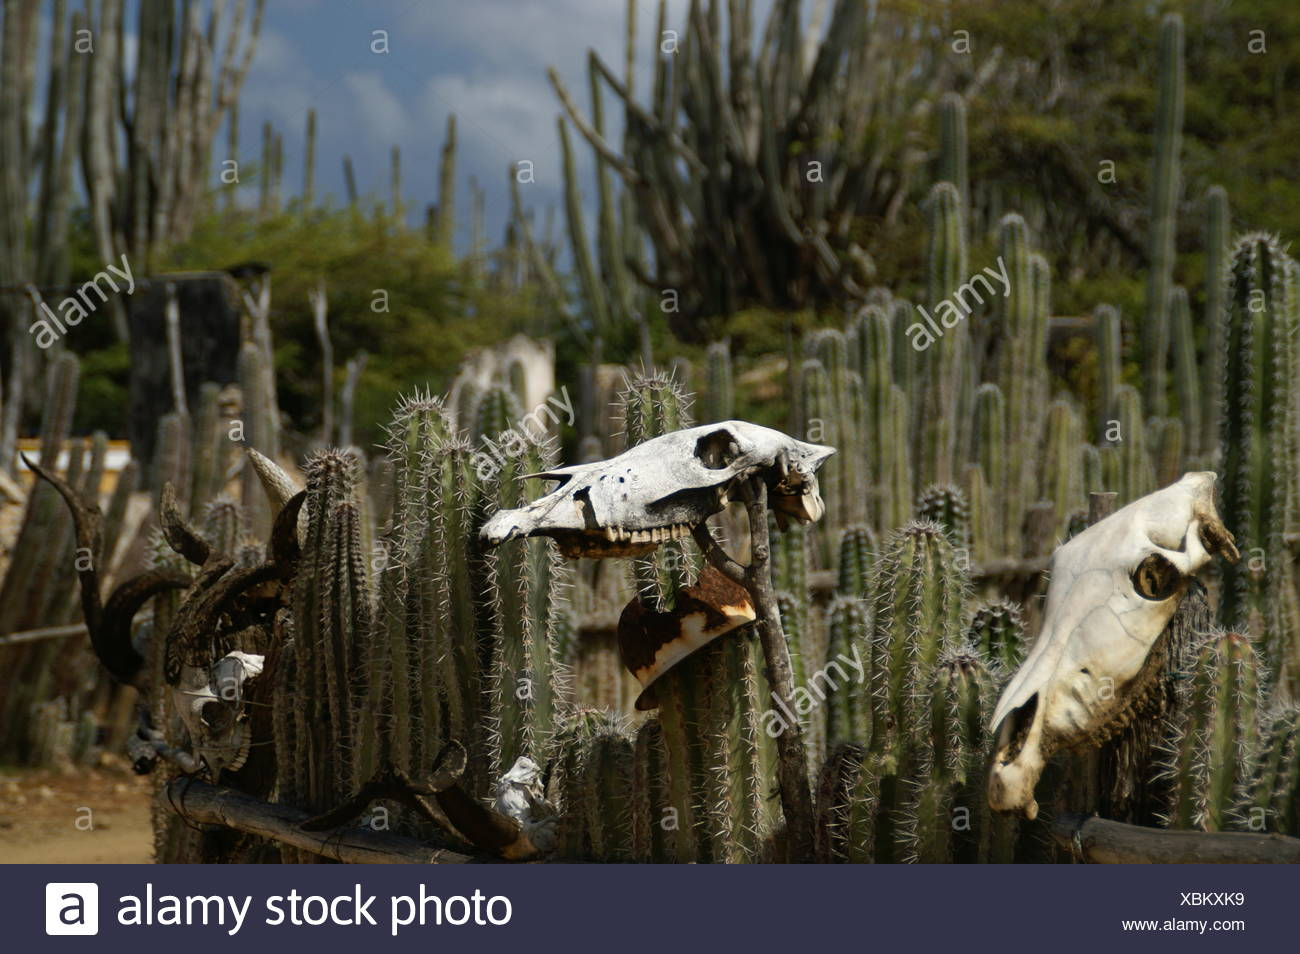 park animal goat fence skull bone cactus skeleton cowboy western